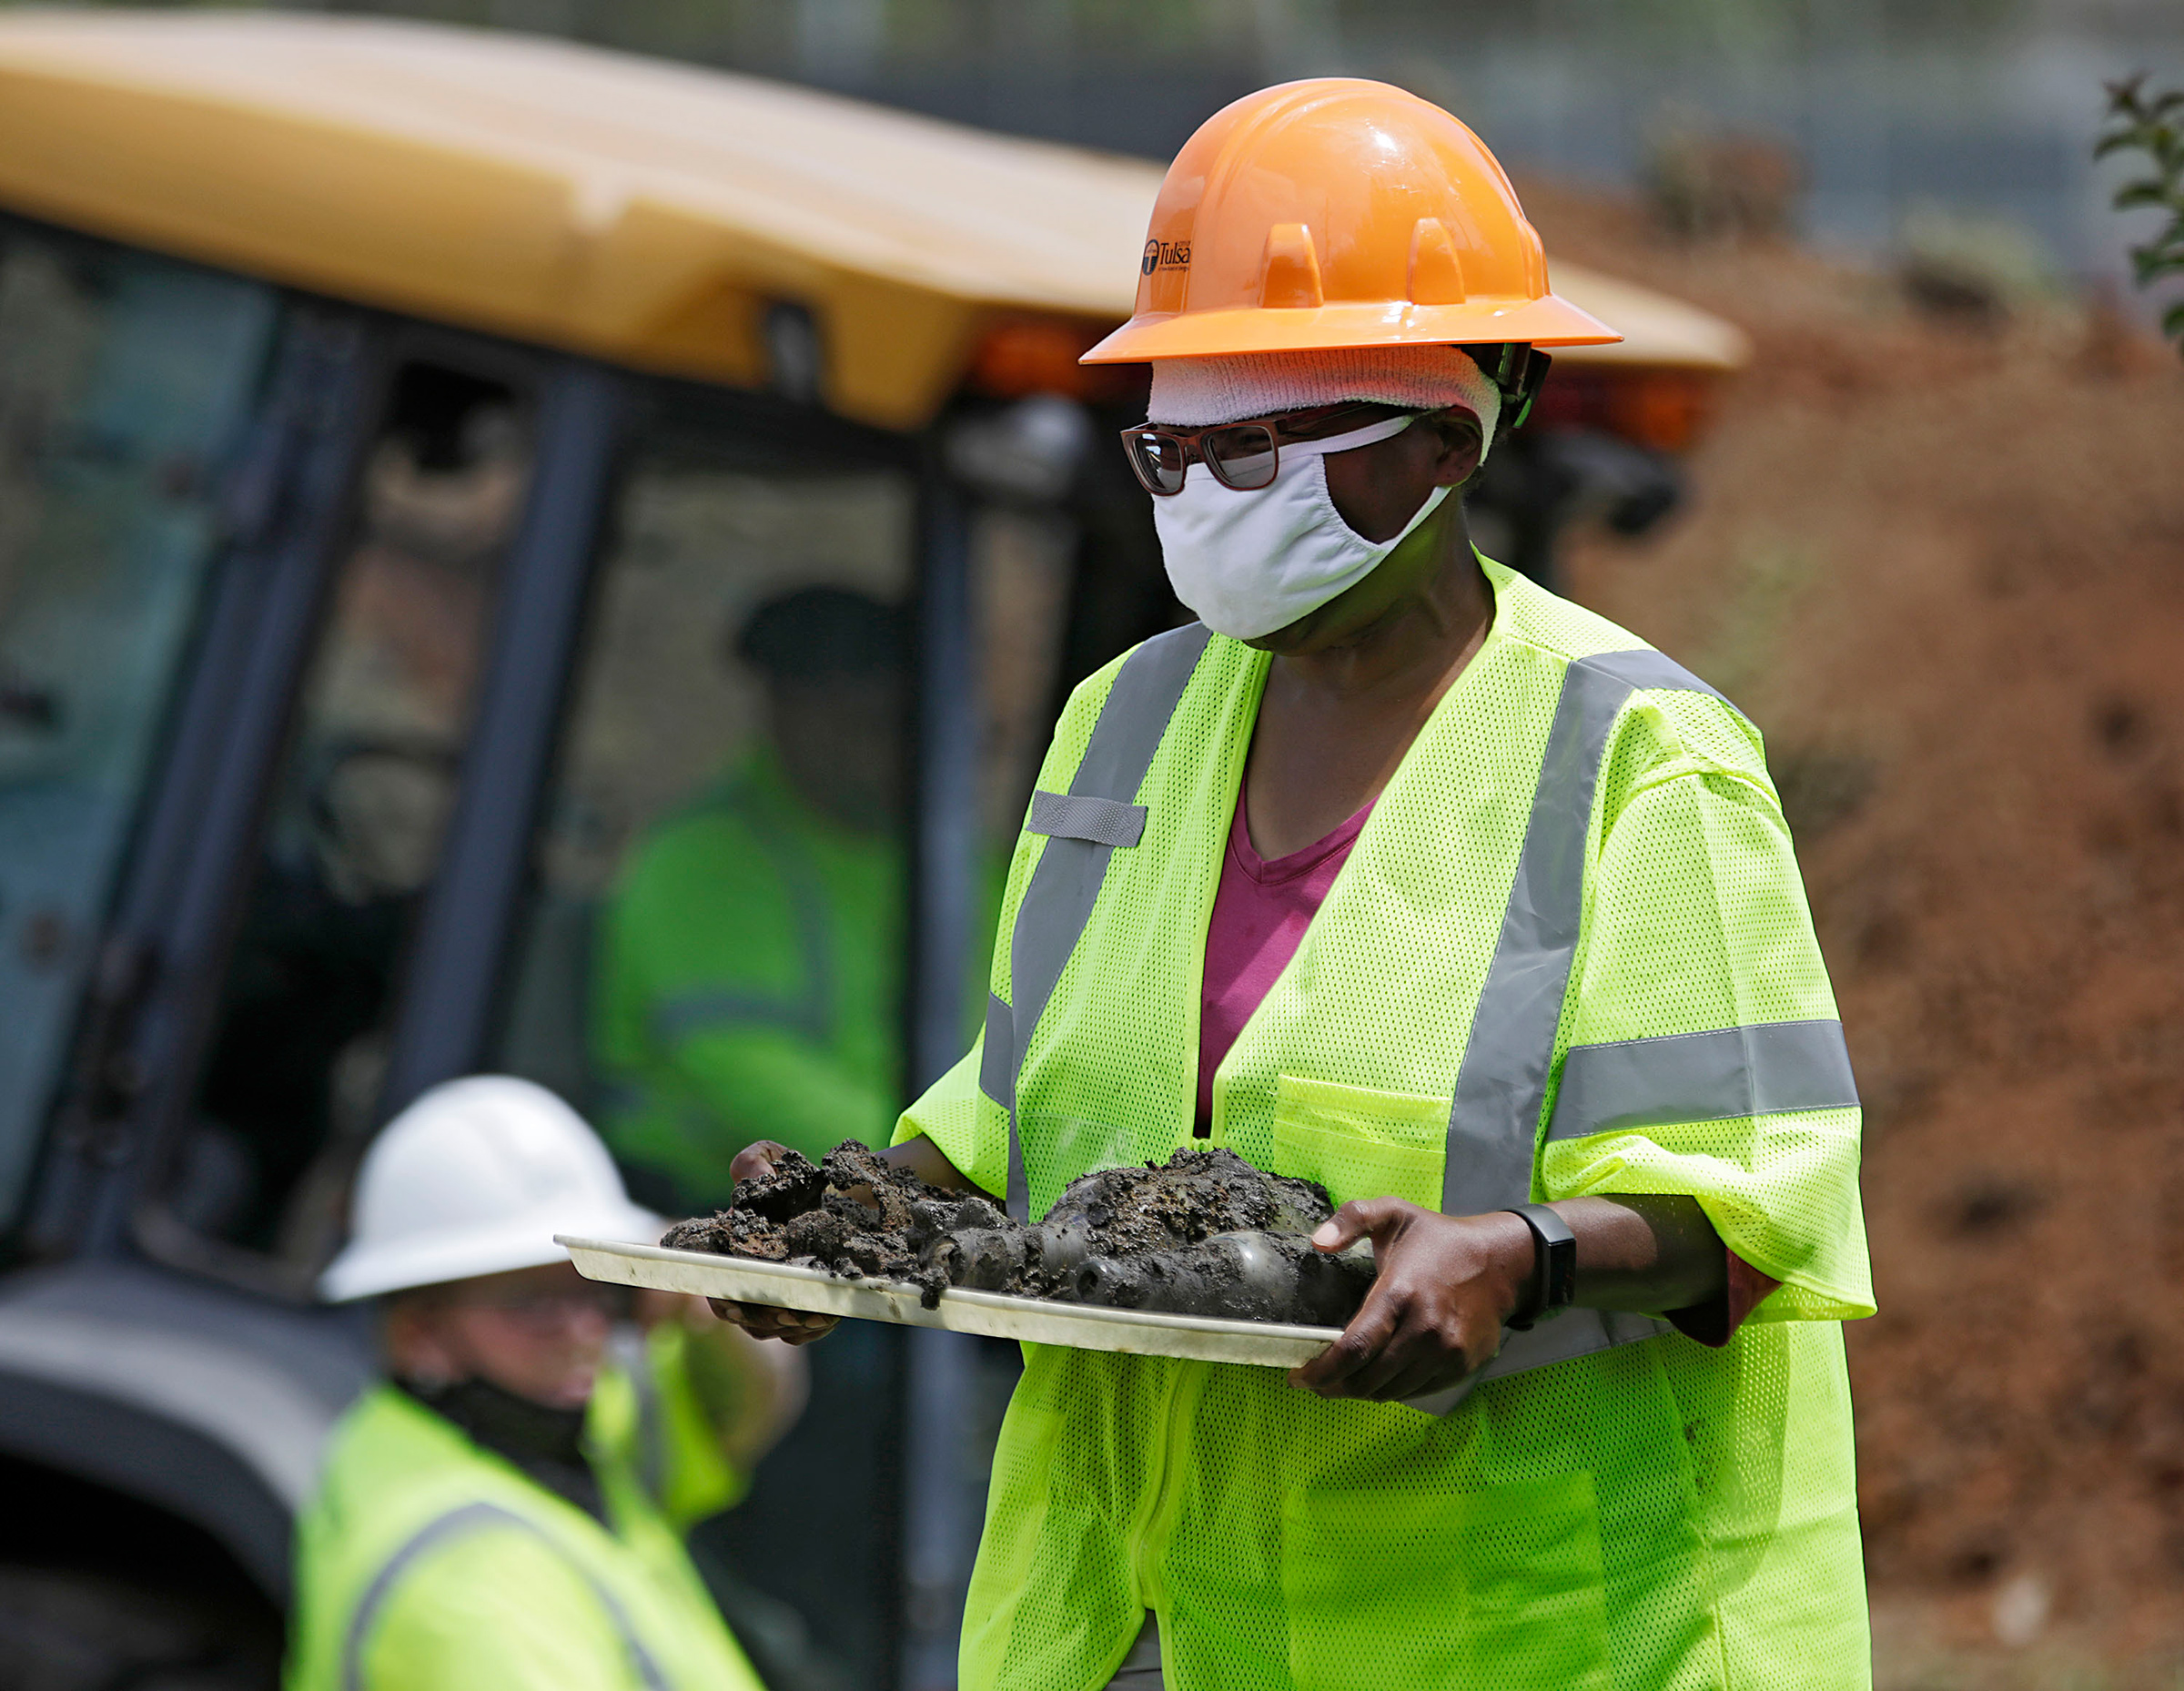 Forensic anthropologist Phoebe Stubblefield carries a tray of items found at Oaklawn Cemetery during a test excavation in the search for possible mass graves from the 1921 Tulsa Race Massacre in Tulsa, Okla., on July 21, 2020.